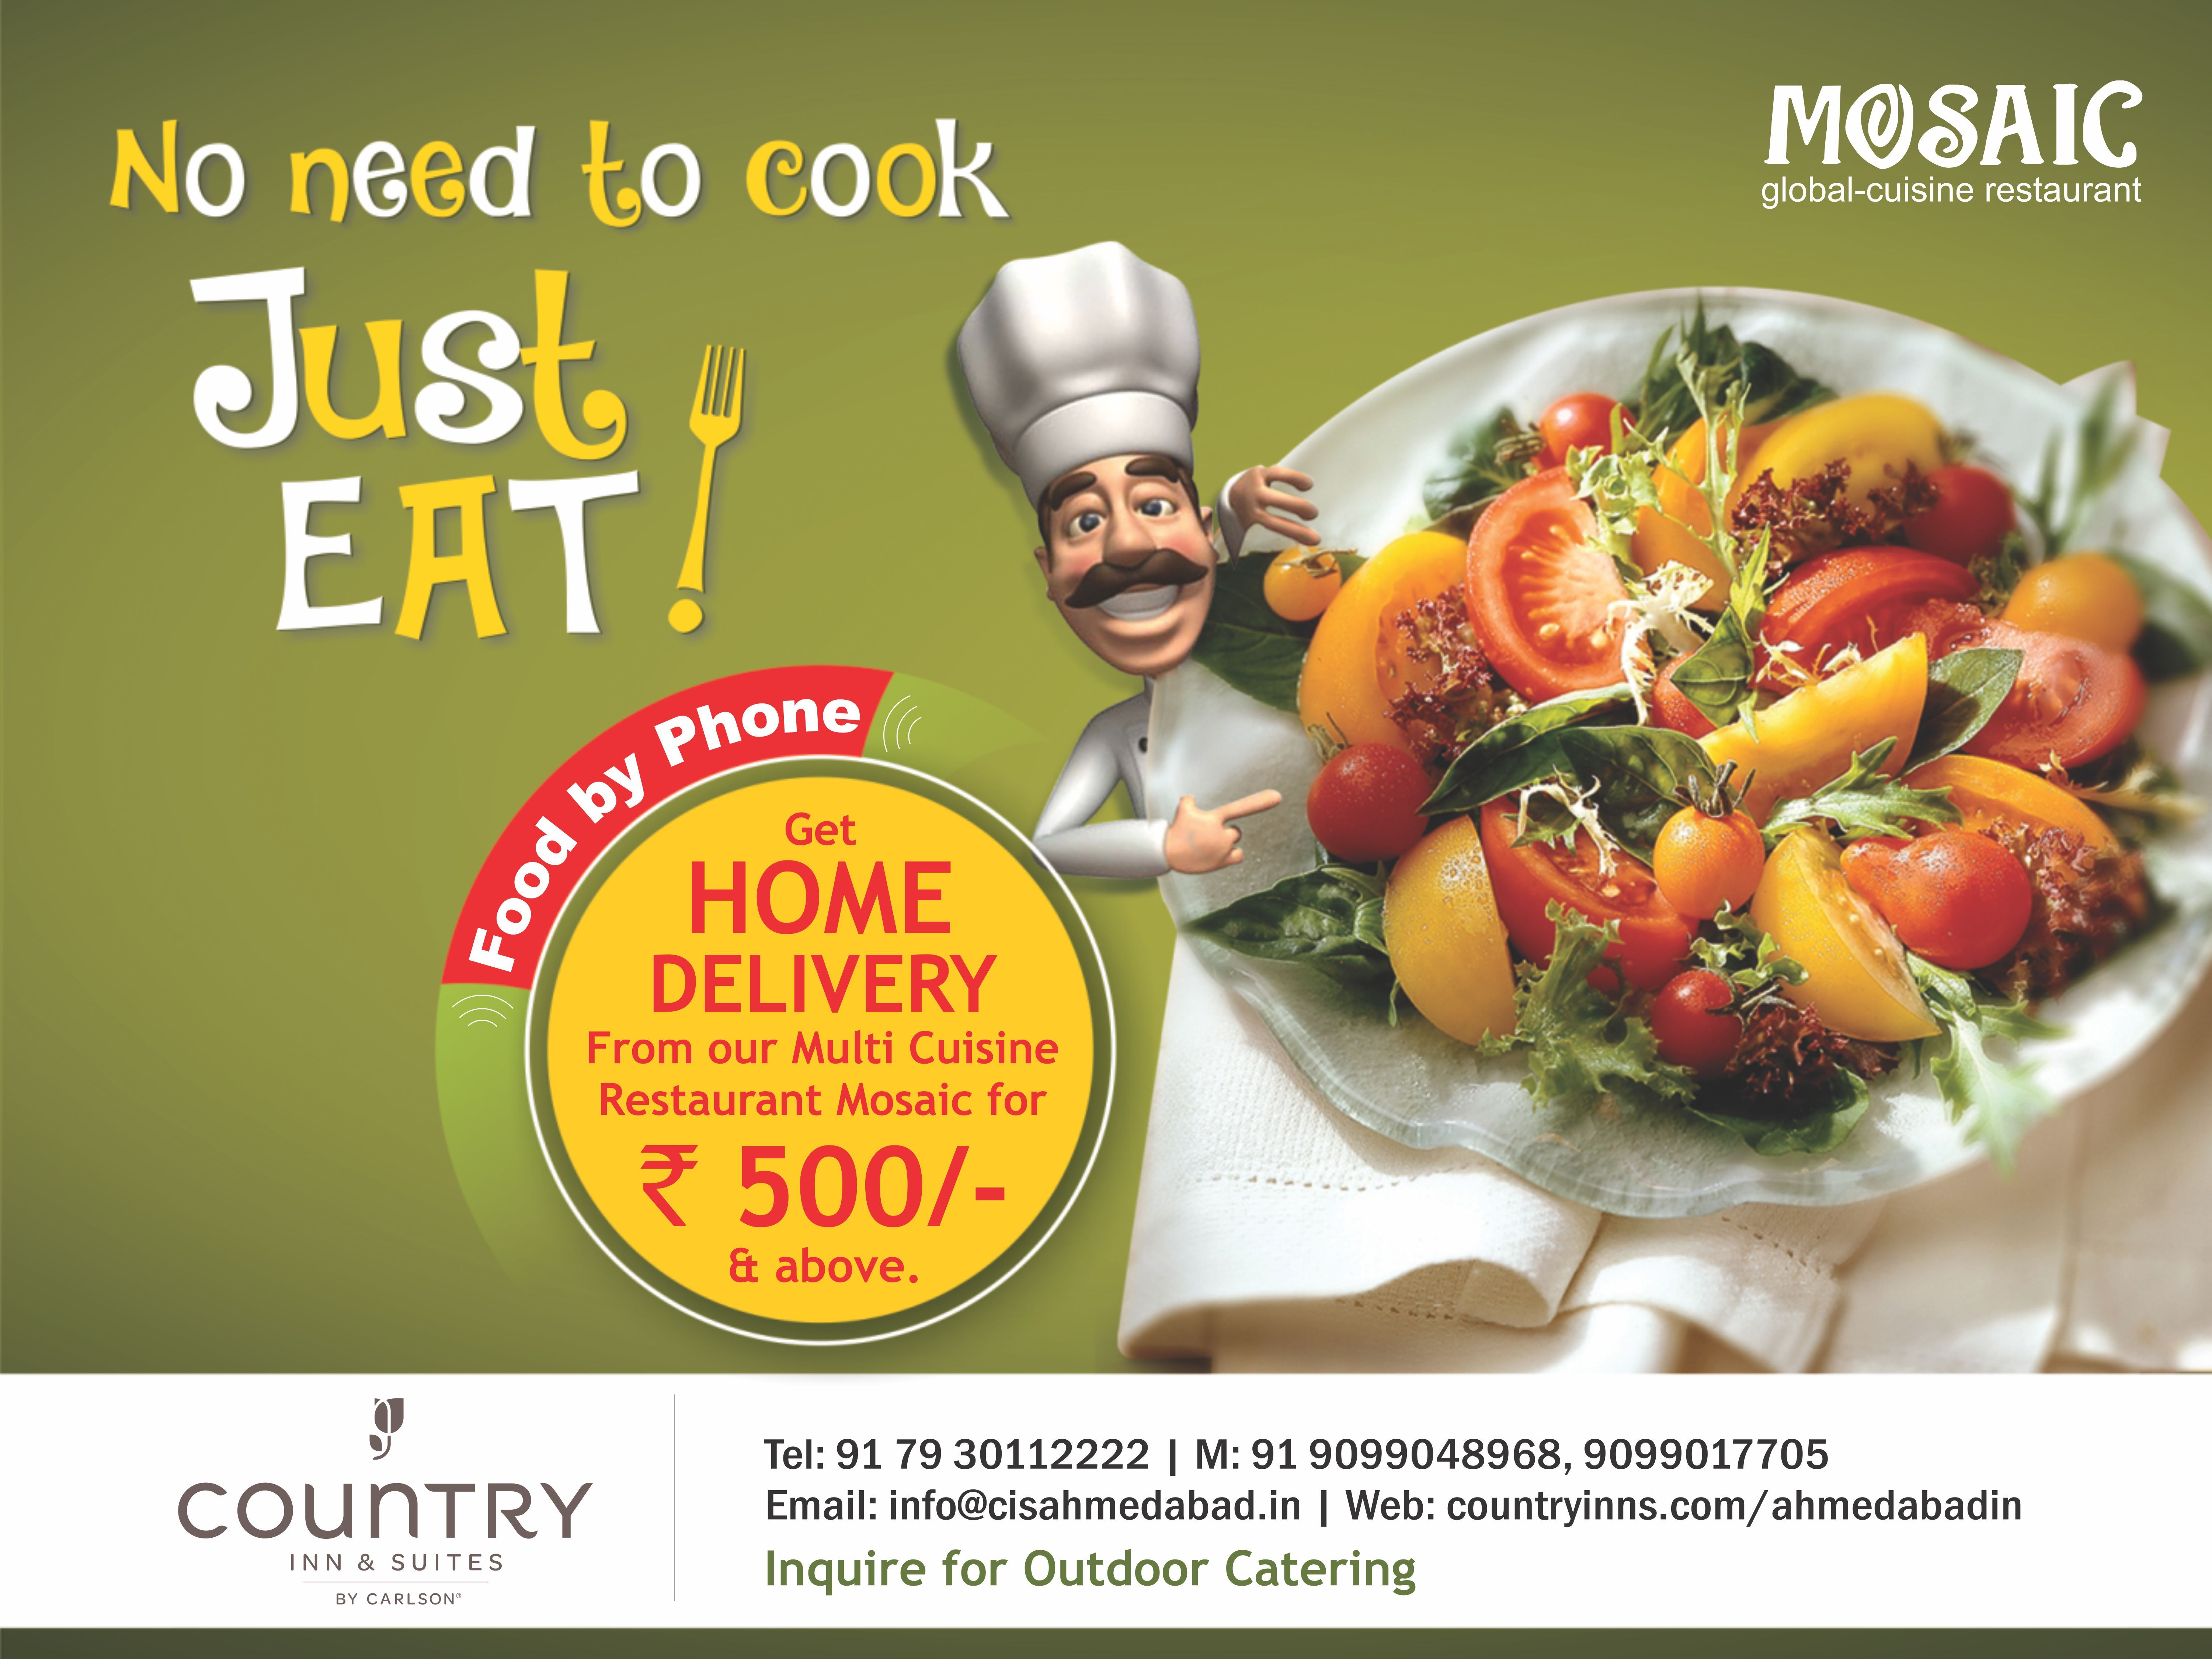 Good news get home delivery for rs 500 above at only mosaic food forumfinder Image collections